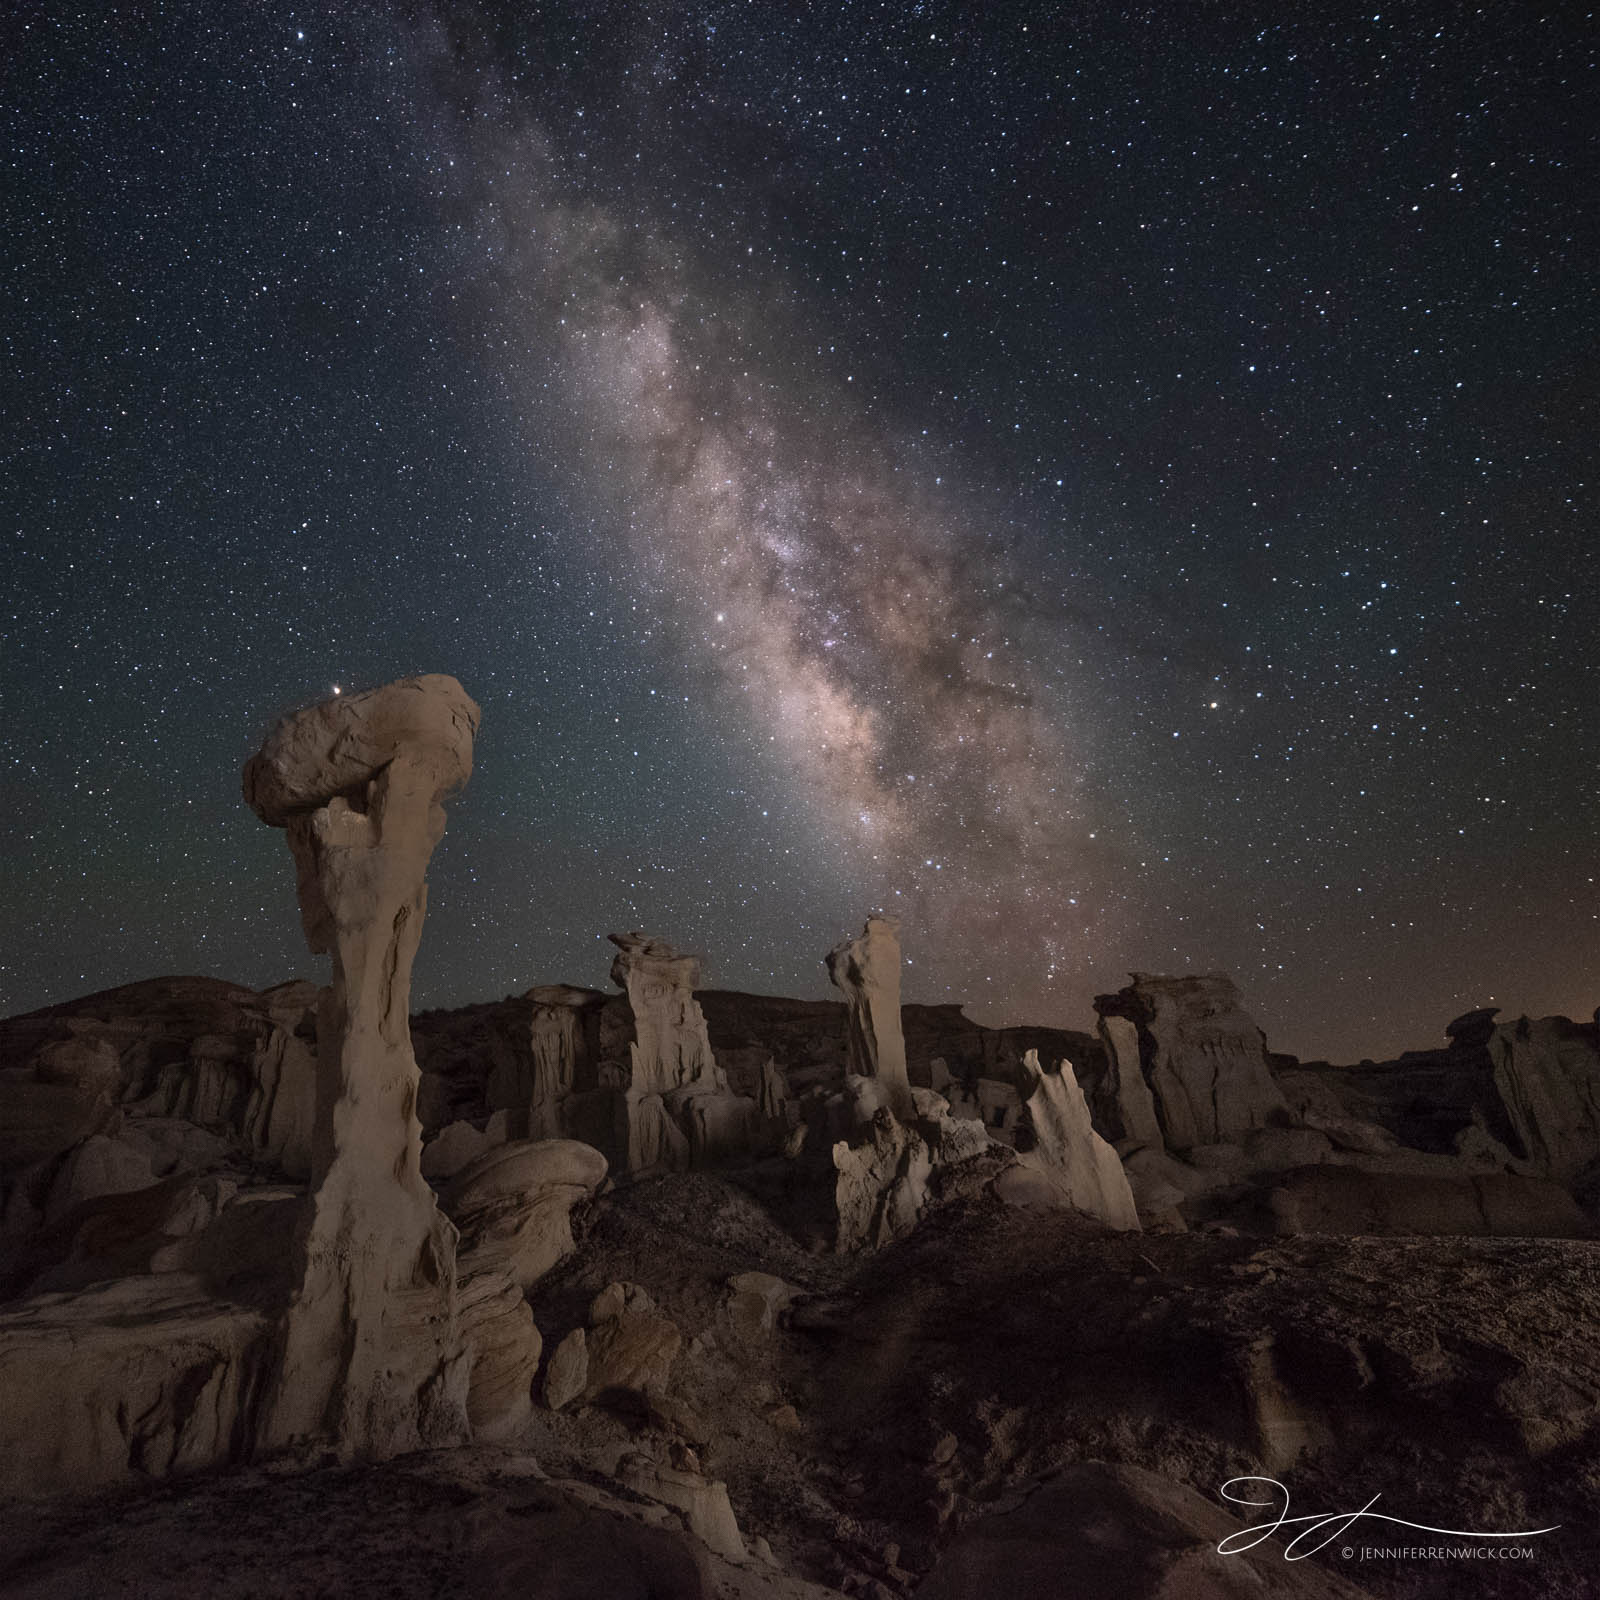 The Milky Way stretches over an area of badlands in New Mexico.